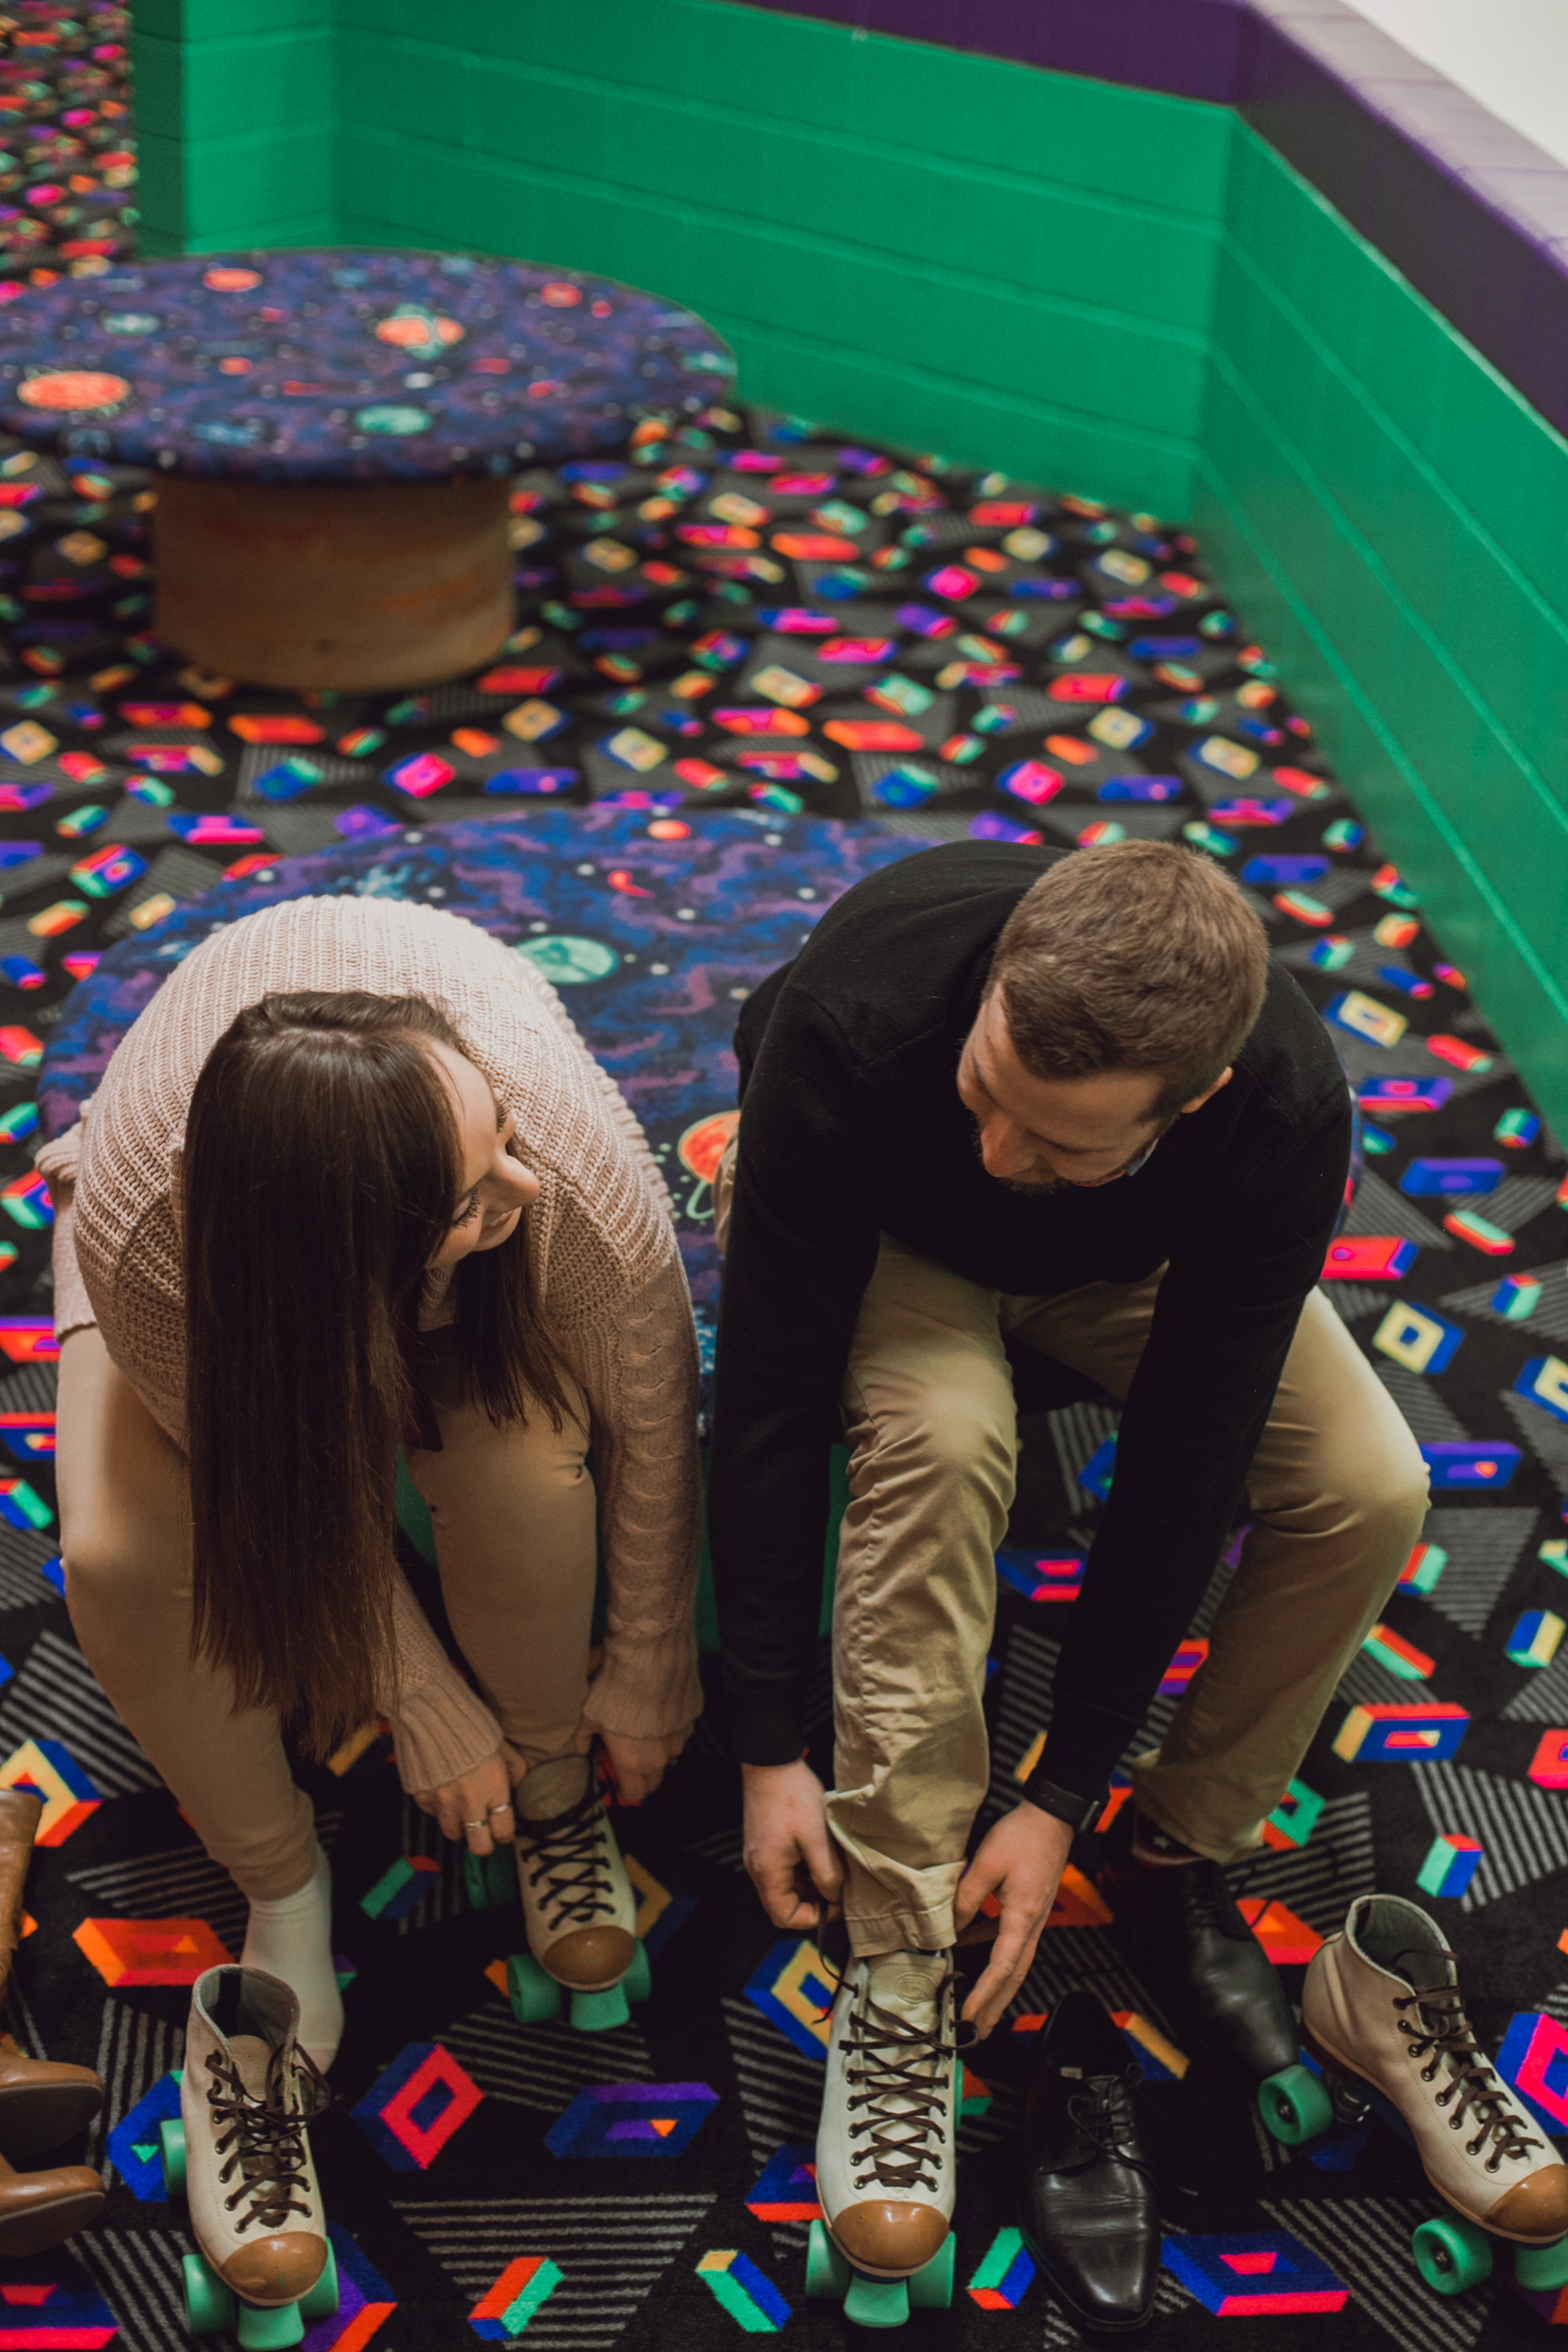 roller rink engagement session, wooddale fun zone engagement session, roller skate engagement session, minneapolis cafe lucrat engagment session, cafe lucrat engagement session, minneapolis minnesota engagement session-www.rachelsmak.com1.jpg